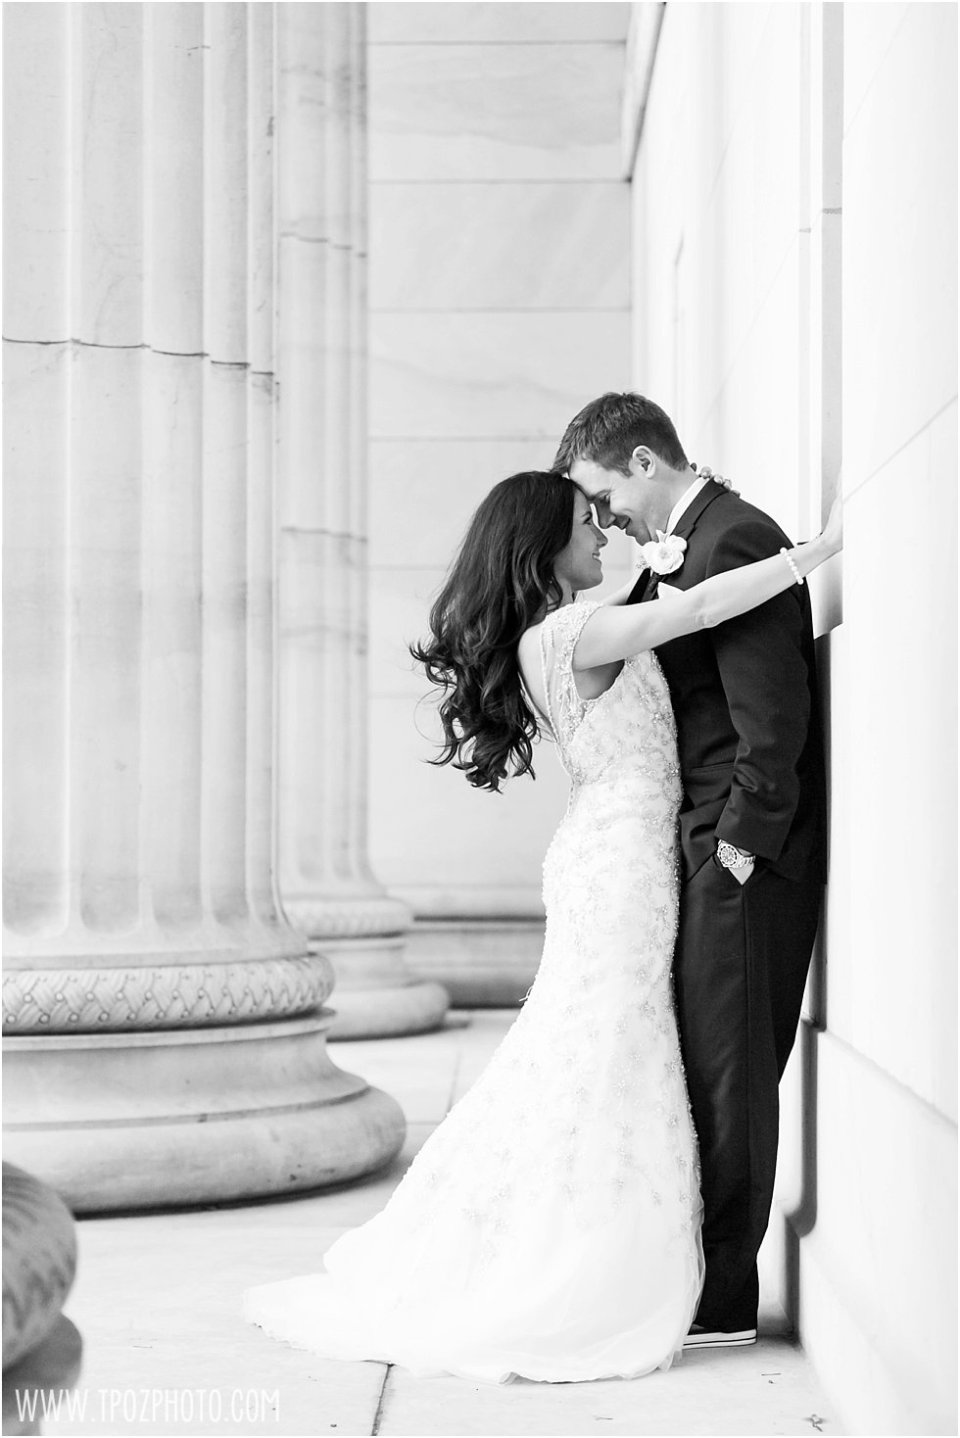 Sexy Sultry Black Tie Baltimore wedding photo  •  tPoz Photography  •  www.tpozphoto.com